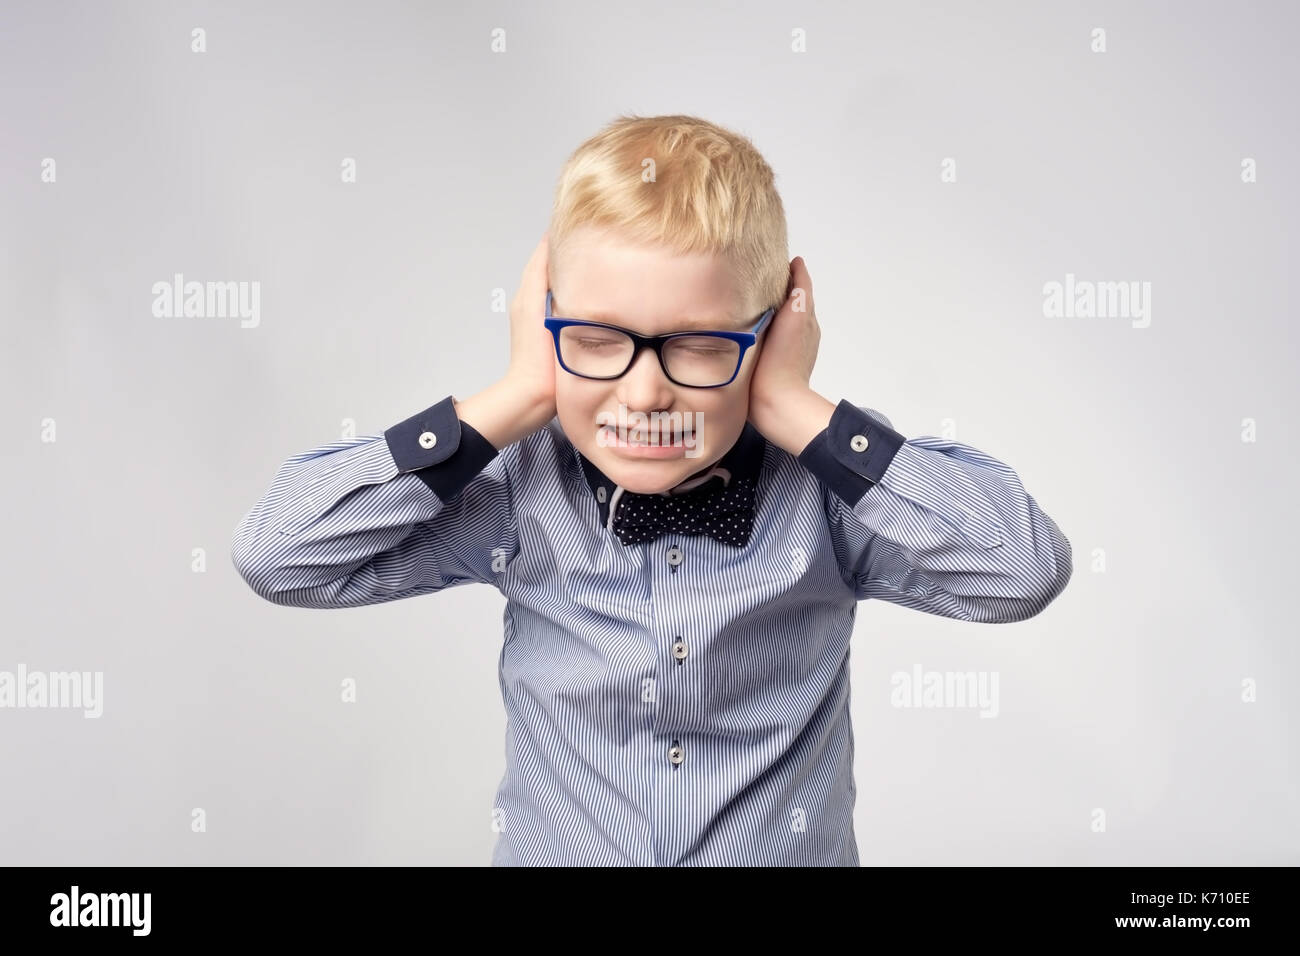 Isolated portrait of gaucasian boy covering ears with hands. Stock Photo